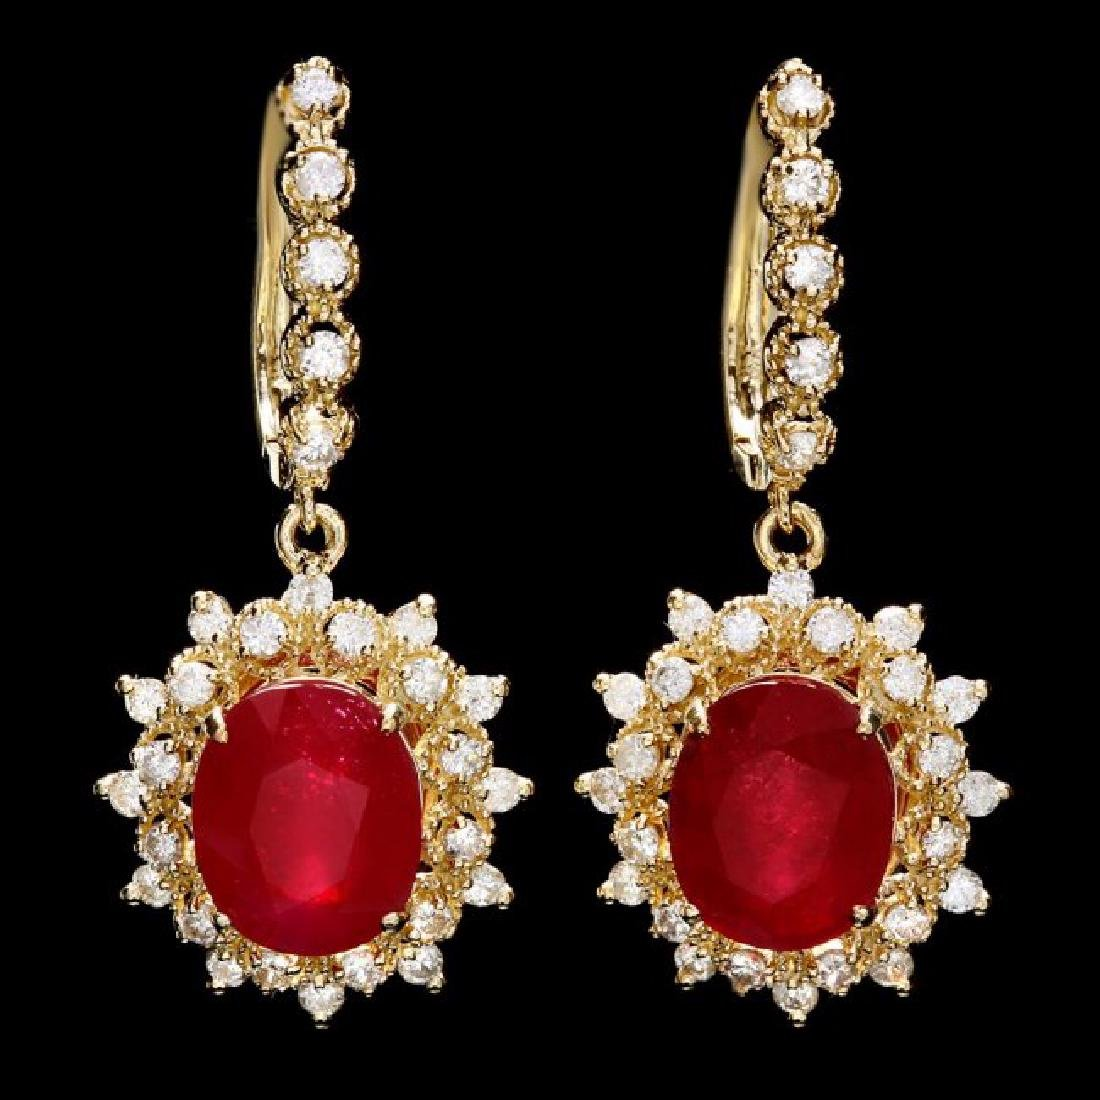 14k Gold 10.00ct Ruby 1.60ct Diamond Earrings - 3